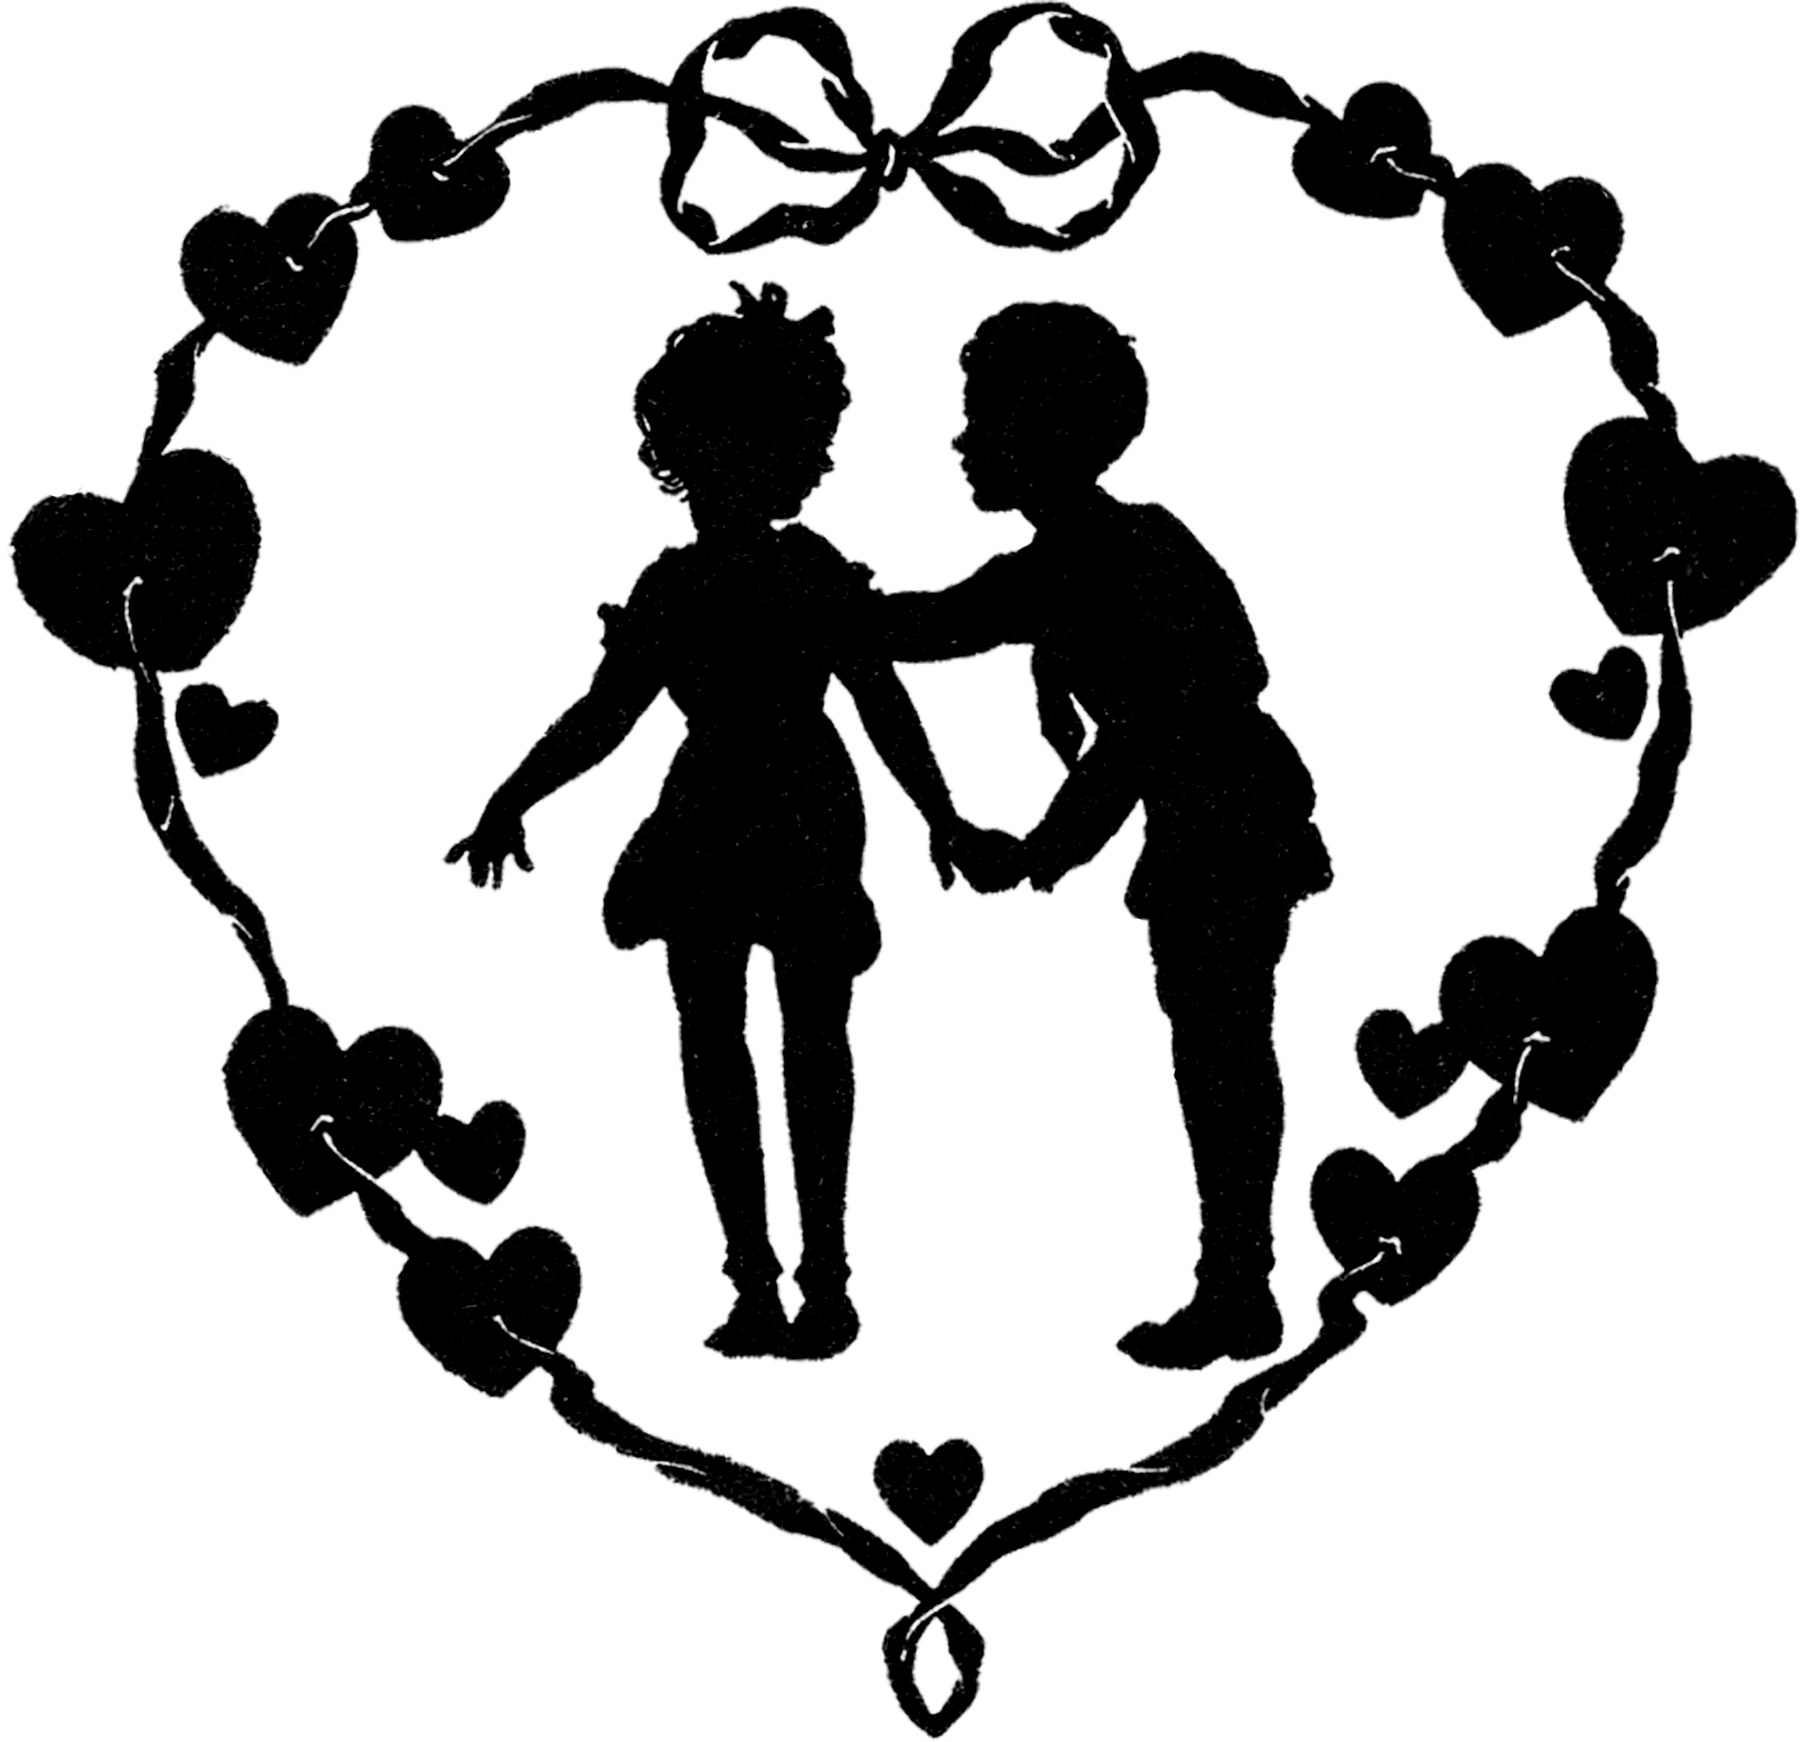 Valentine silhouette clipart graphic royalty free stock 12 Vintage Valentine Silhouettes! - The Graphics Fairy graphic royalty free stock